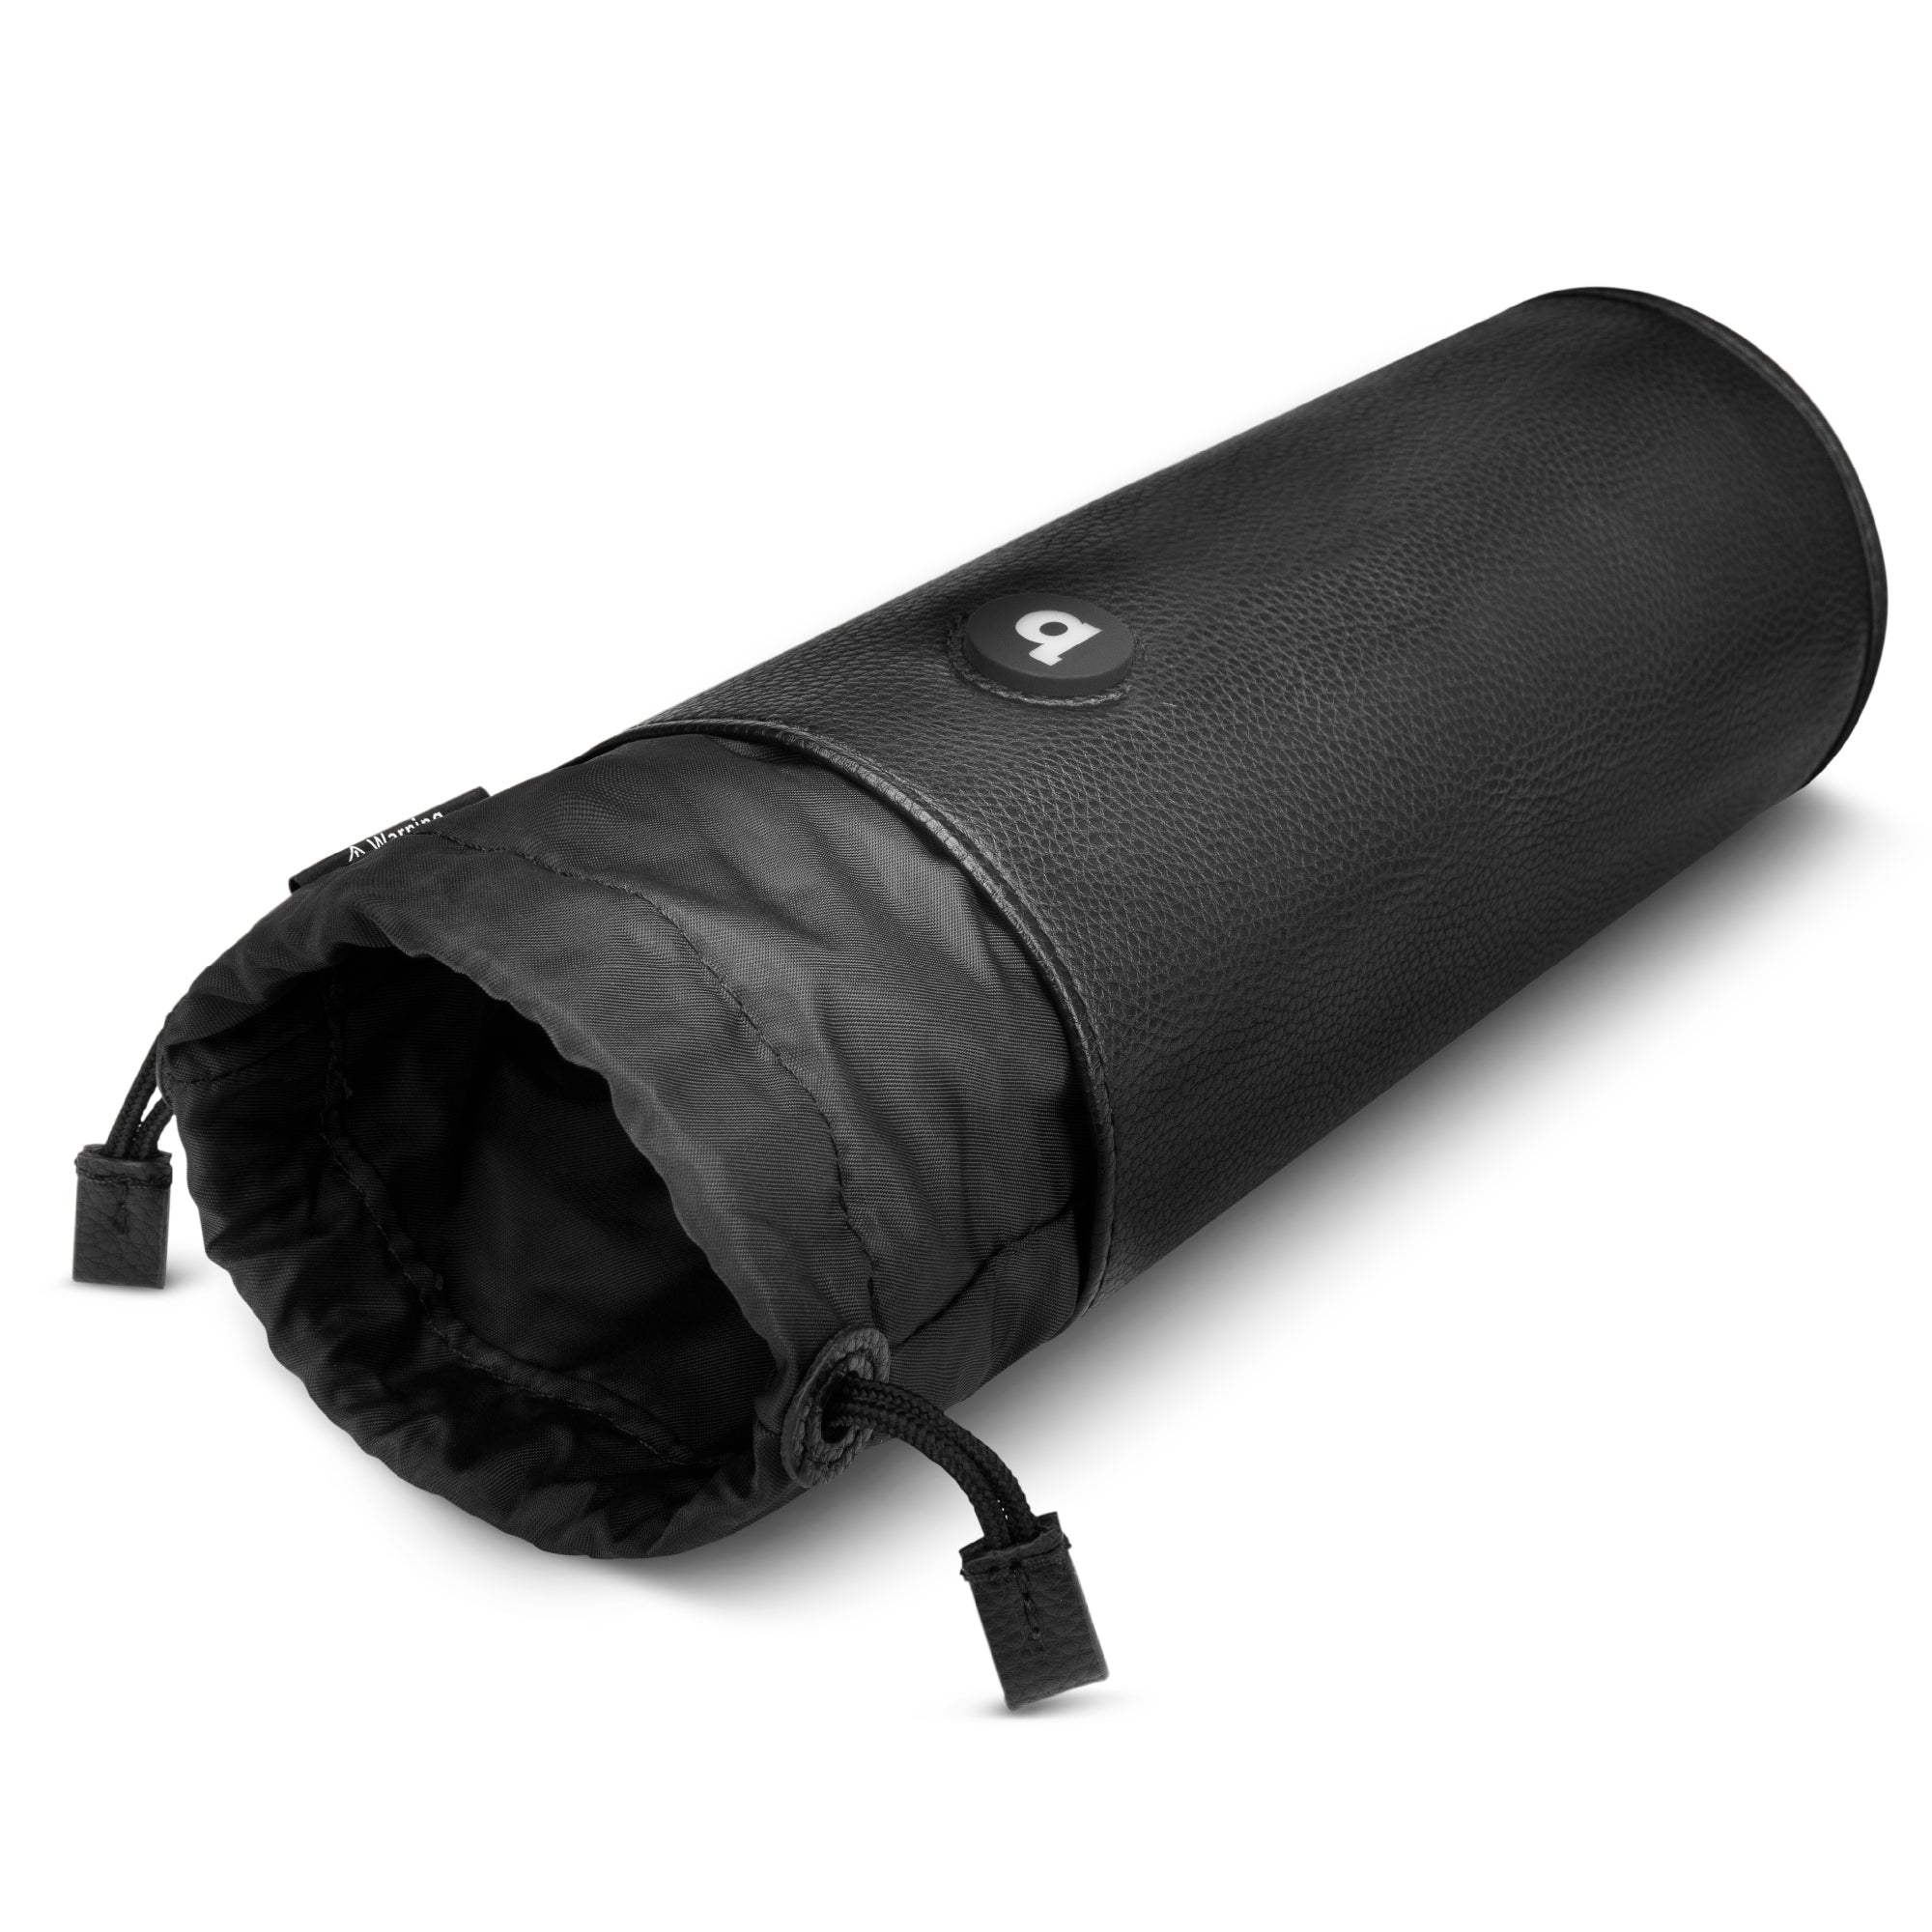 UV Sterilizer Bag - Gläs